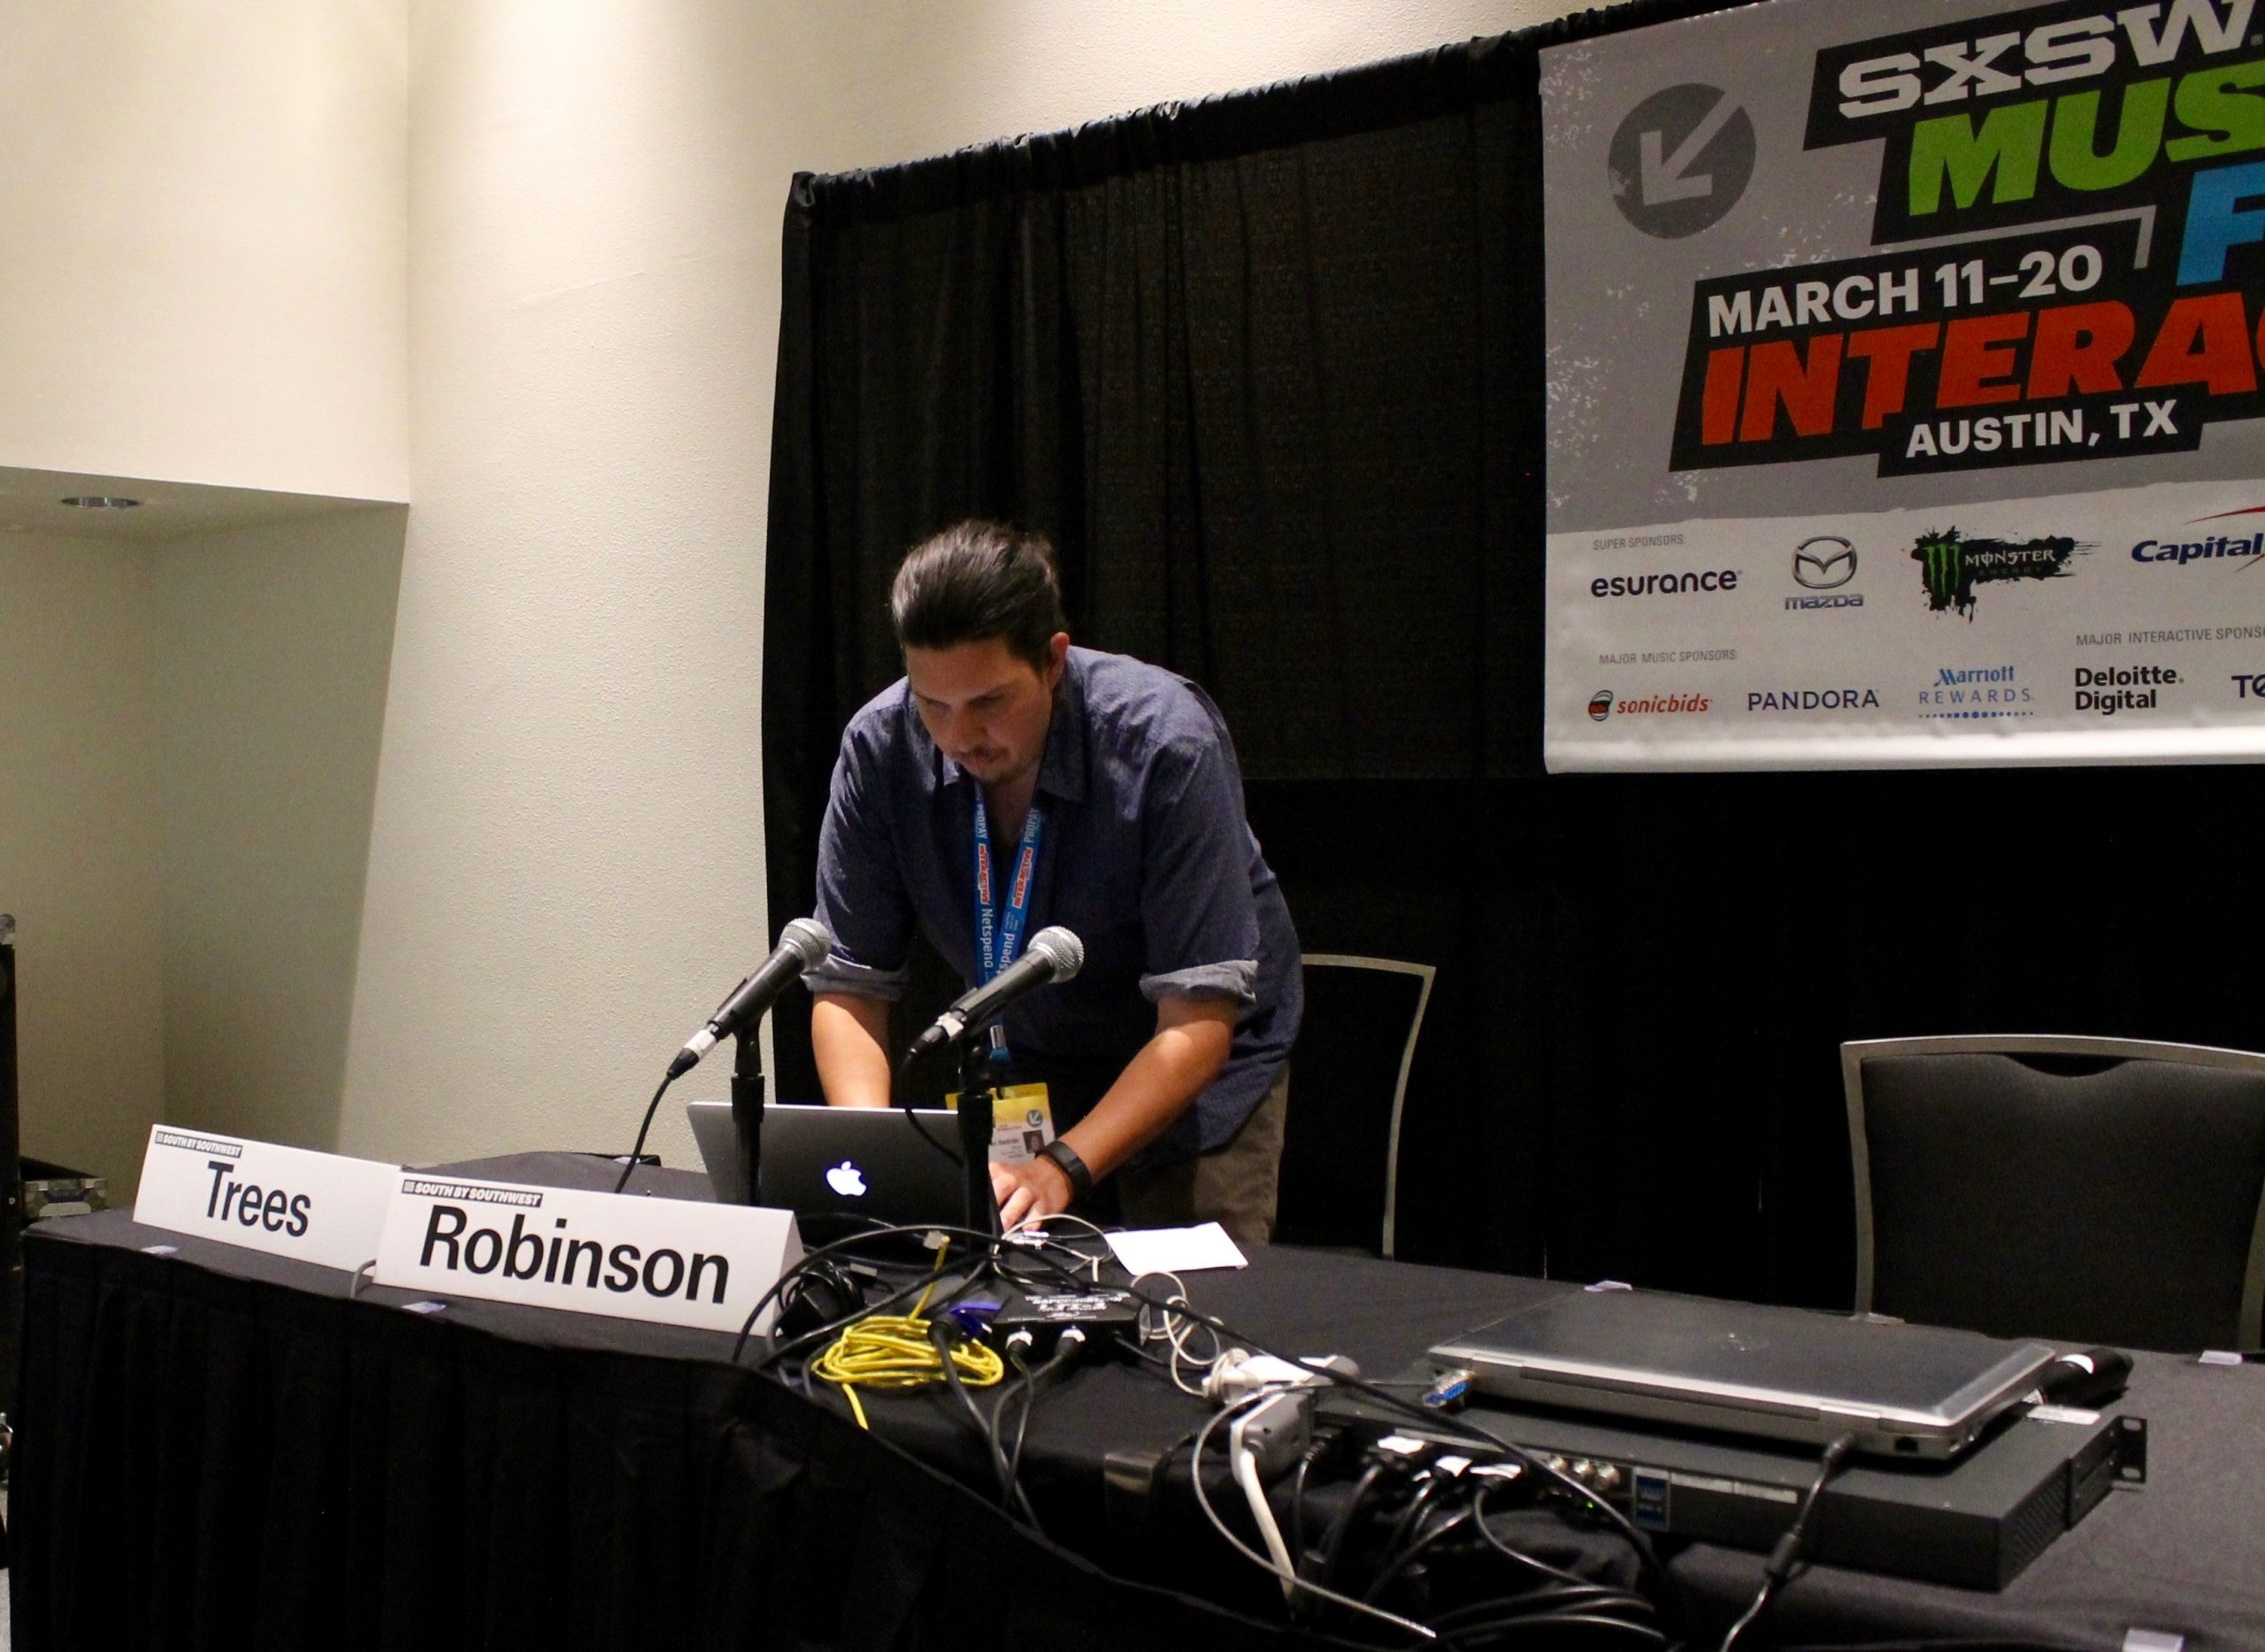 Ryan Beltran, founder of San Antonio company Elequa, preps a short video about open source water purification at the Austin Convention Center on Monday, March 14, 2016. Photo by Edmond Ortiz